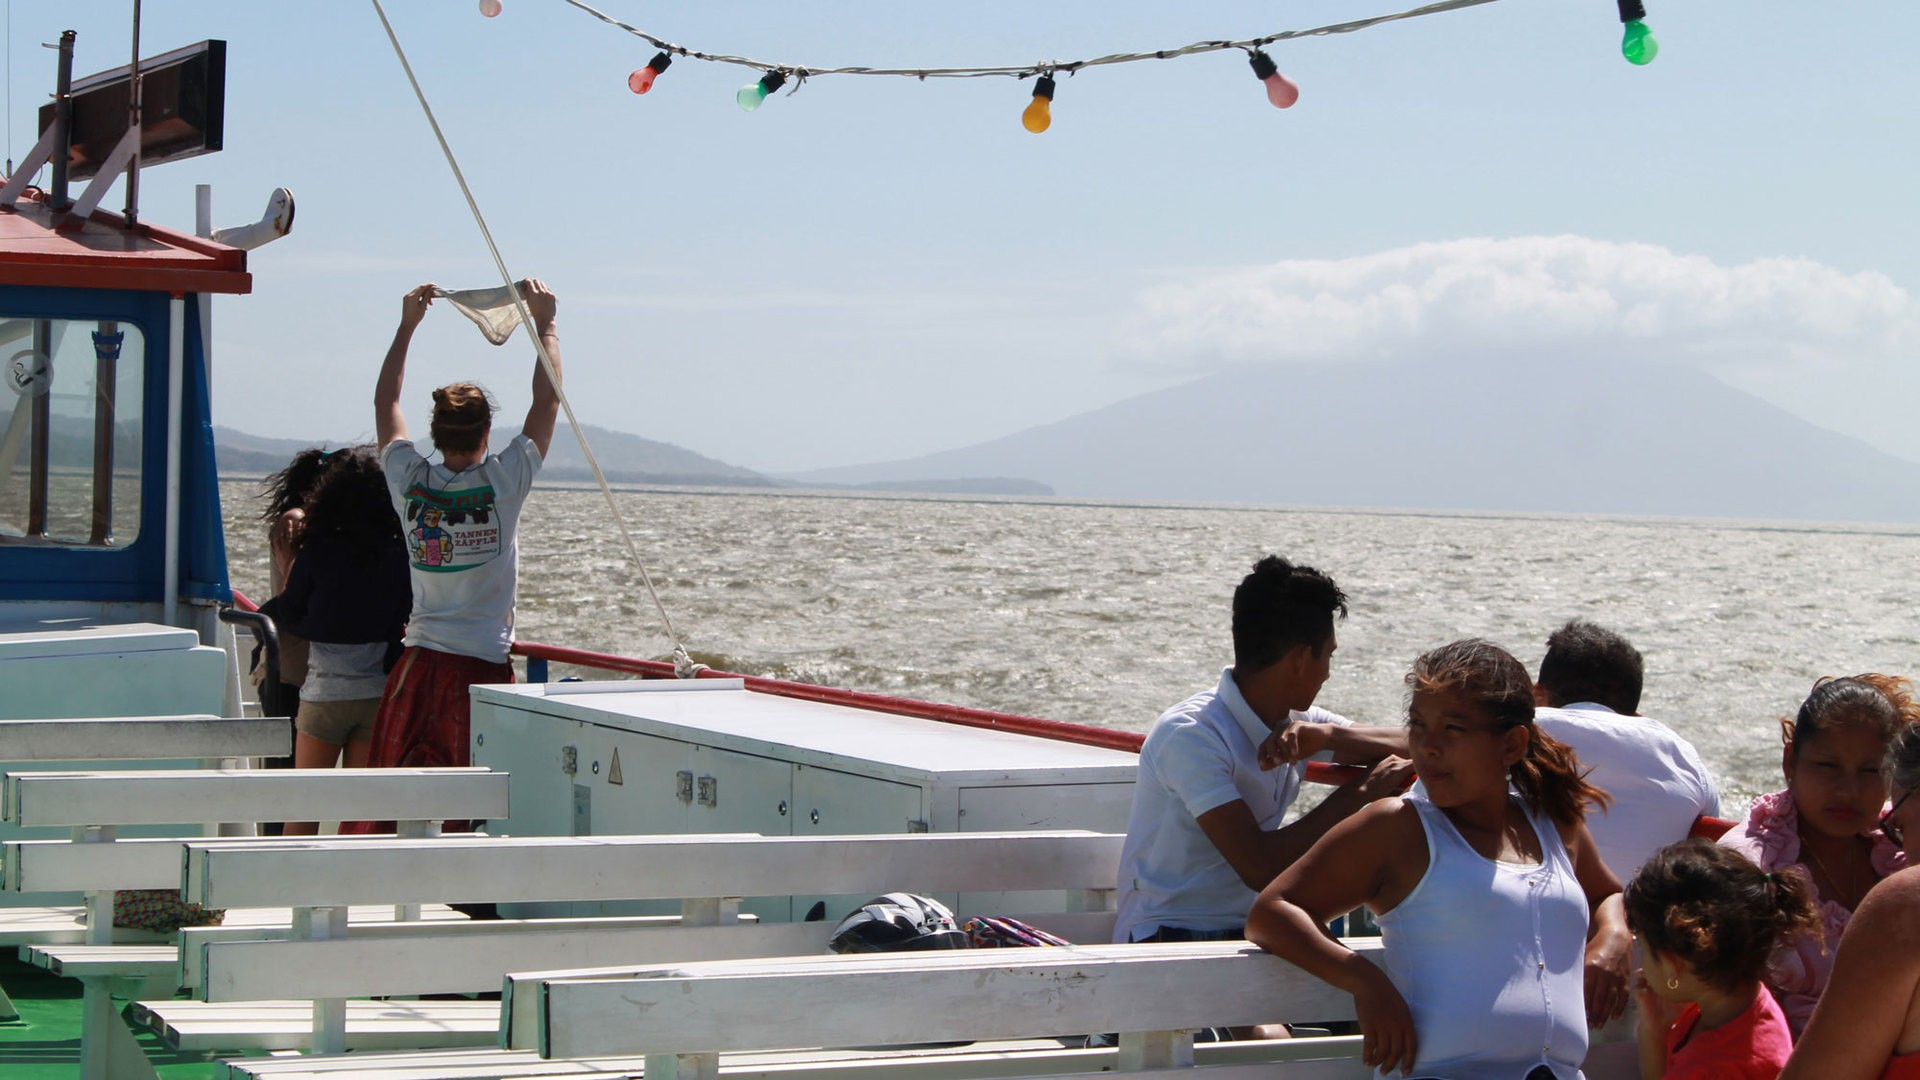 Tourists view the volcanoes of Ometepe, Nicaragua, from a boat. (Photo by Sara Weber)